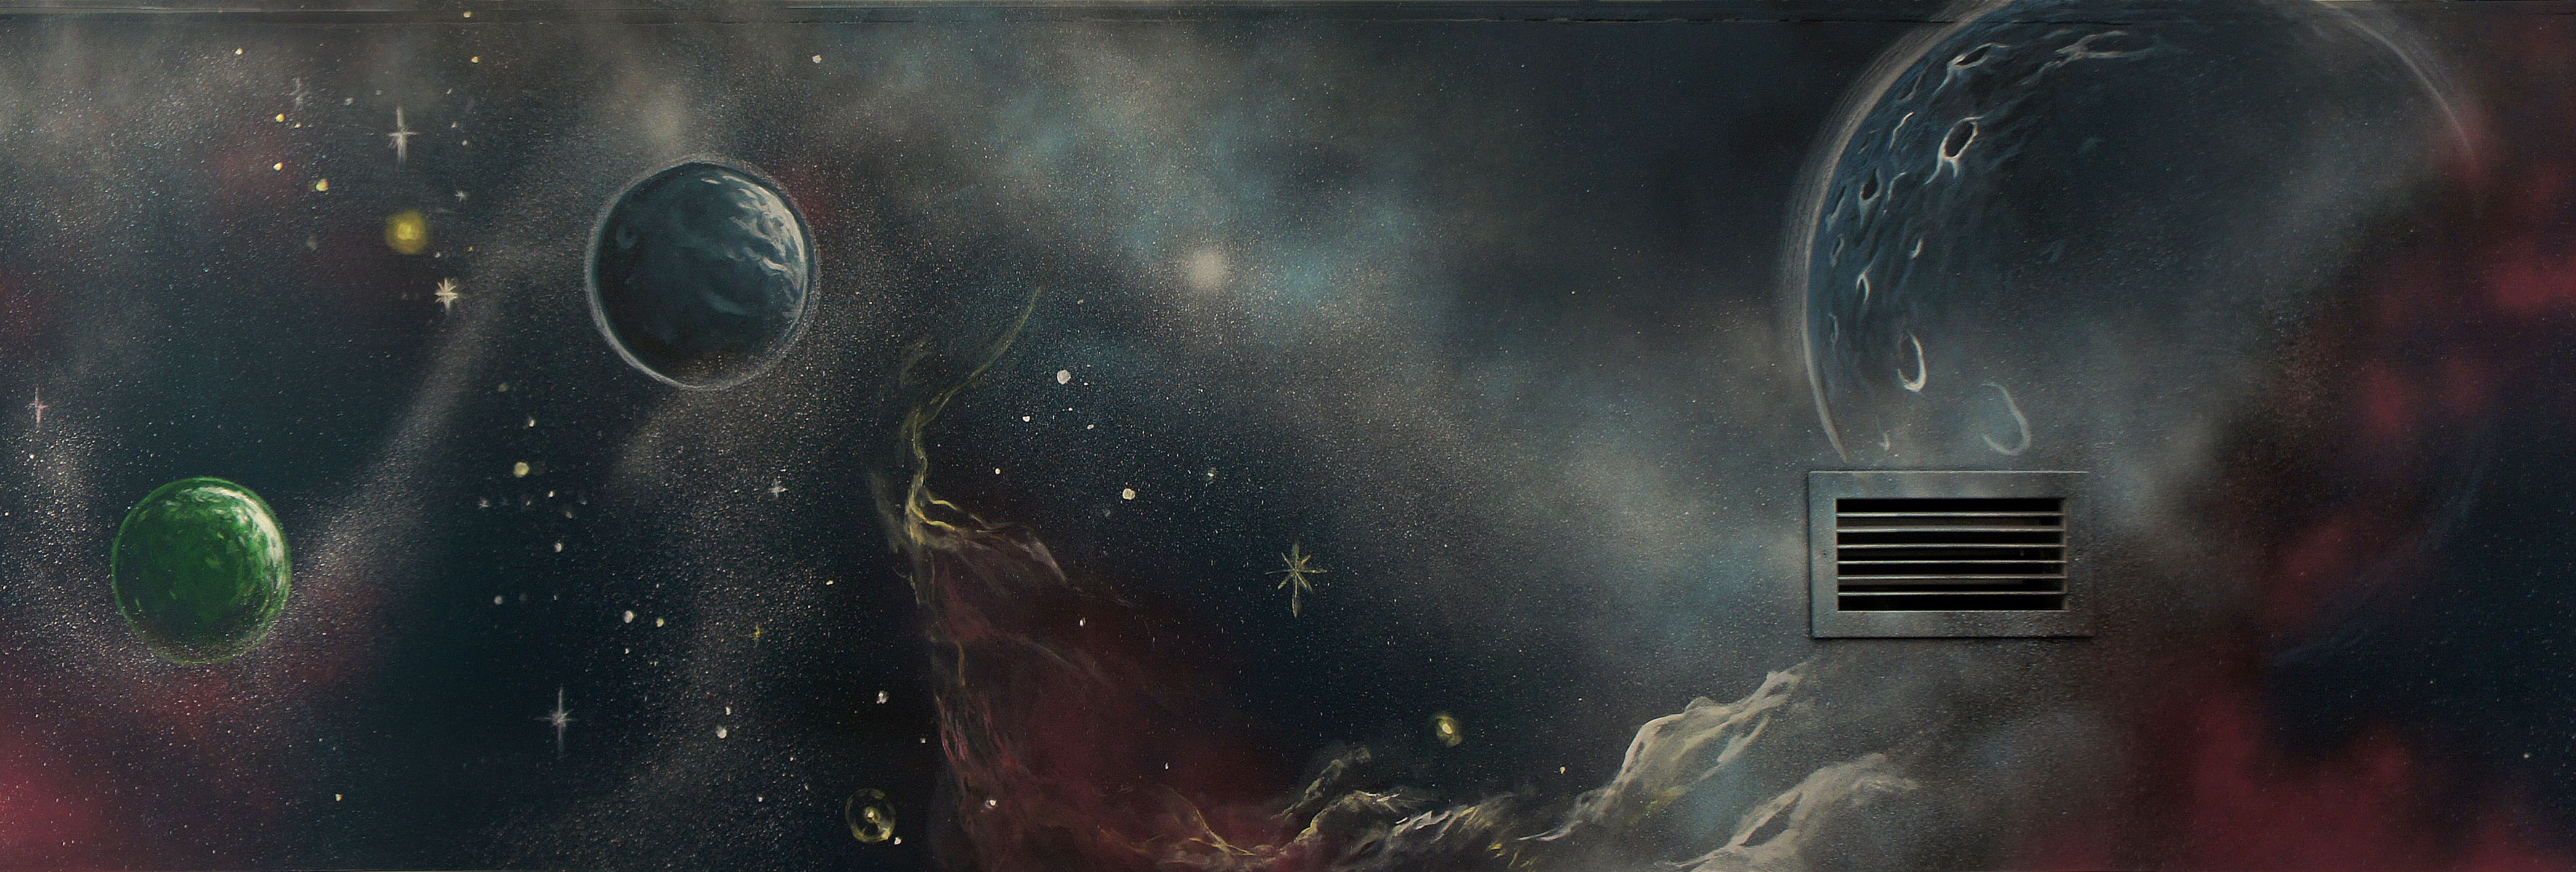 outer space mural painting